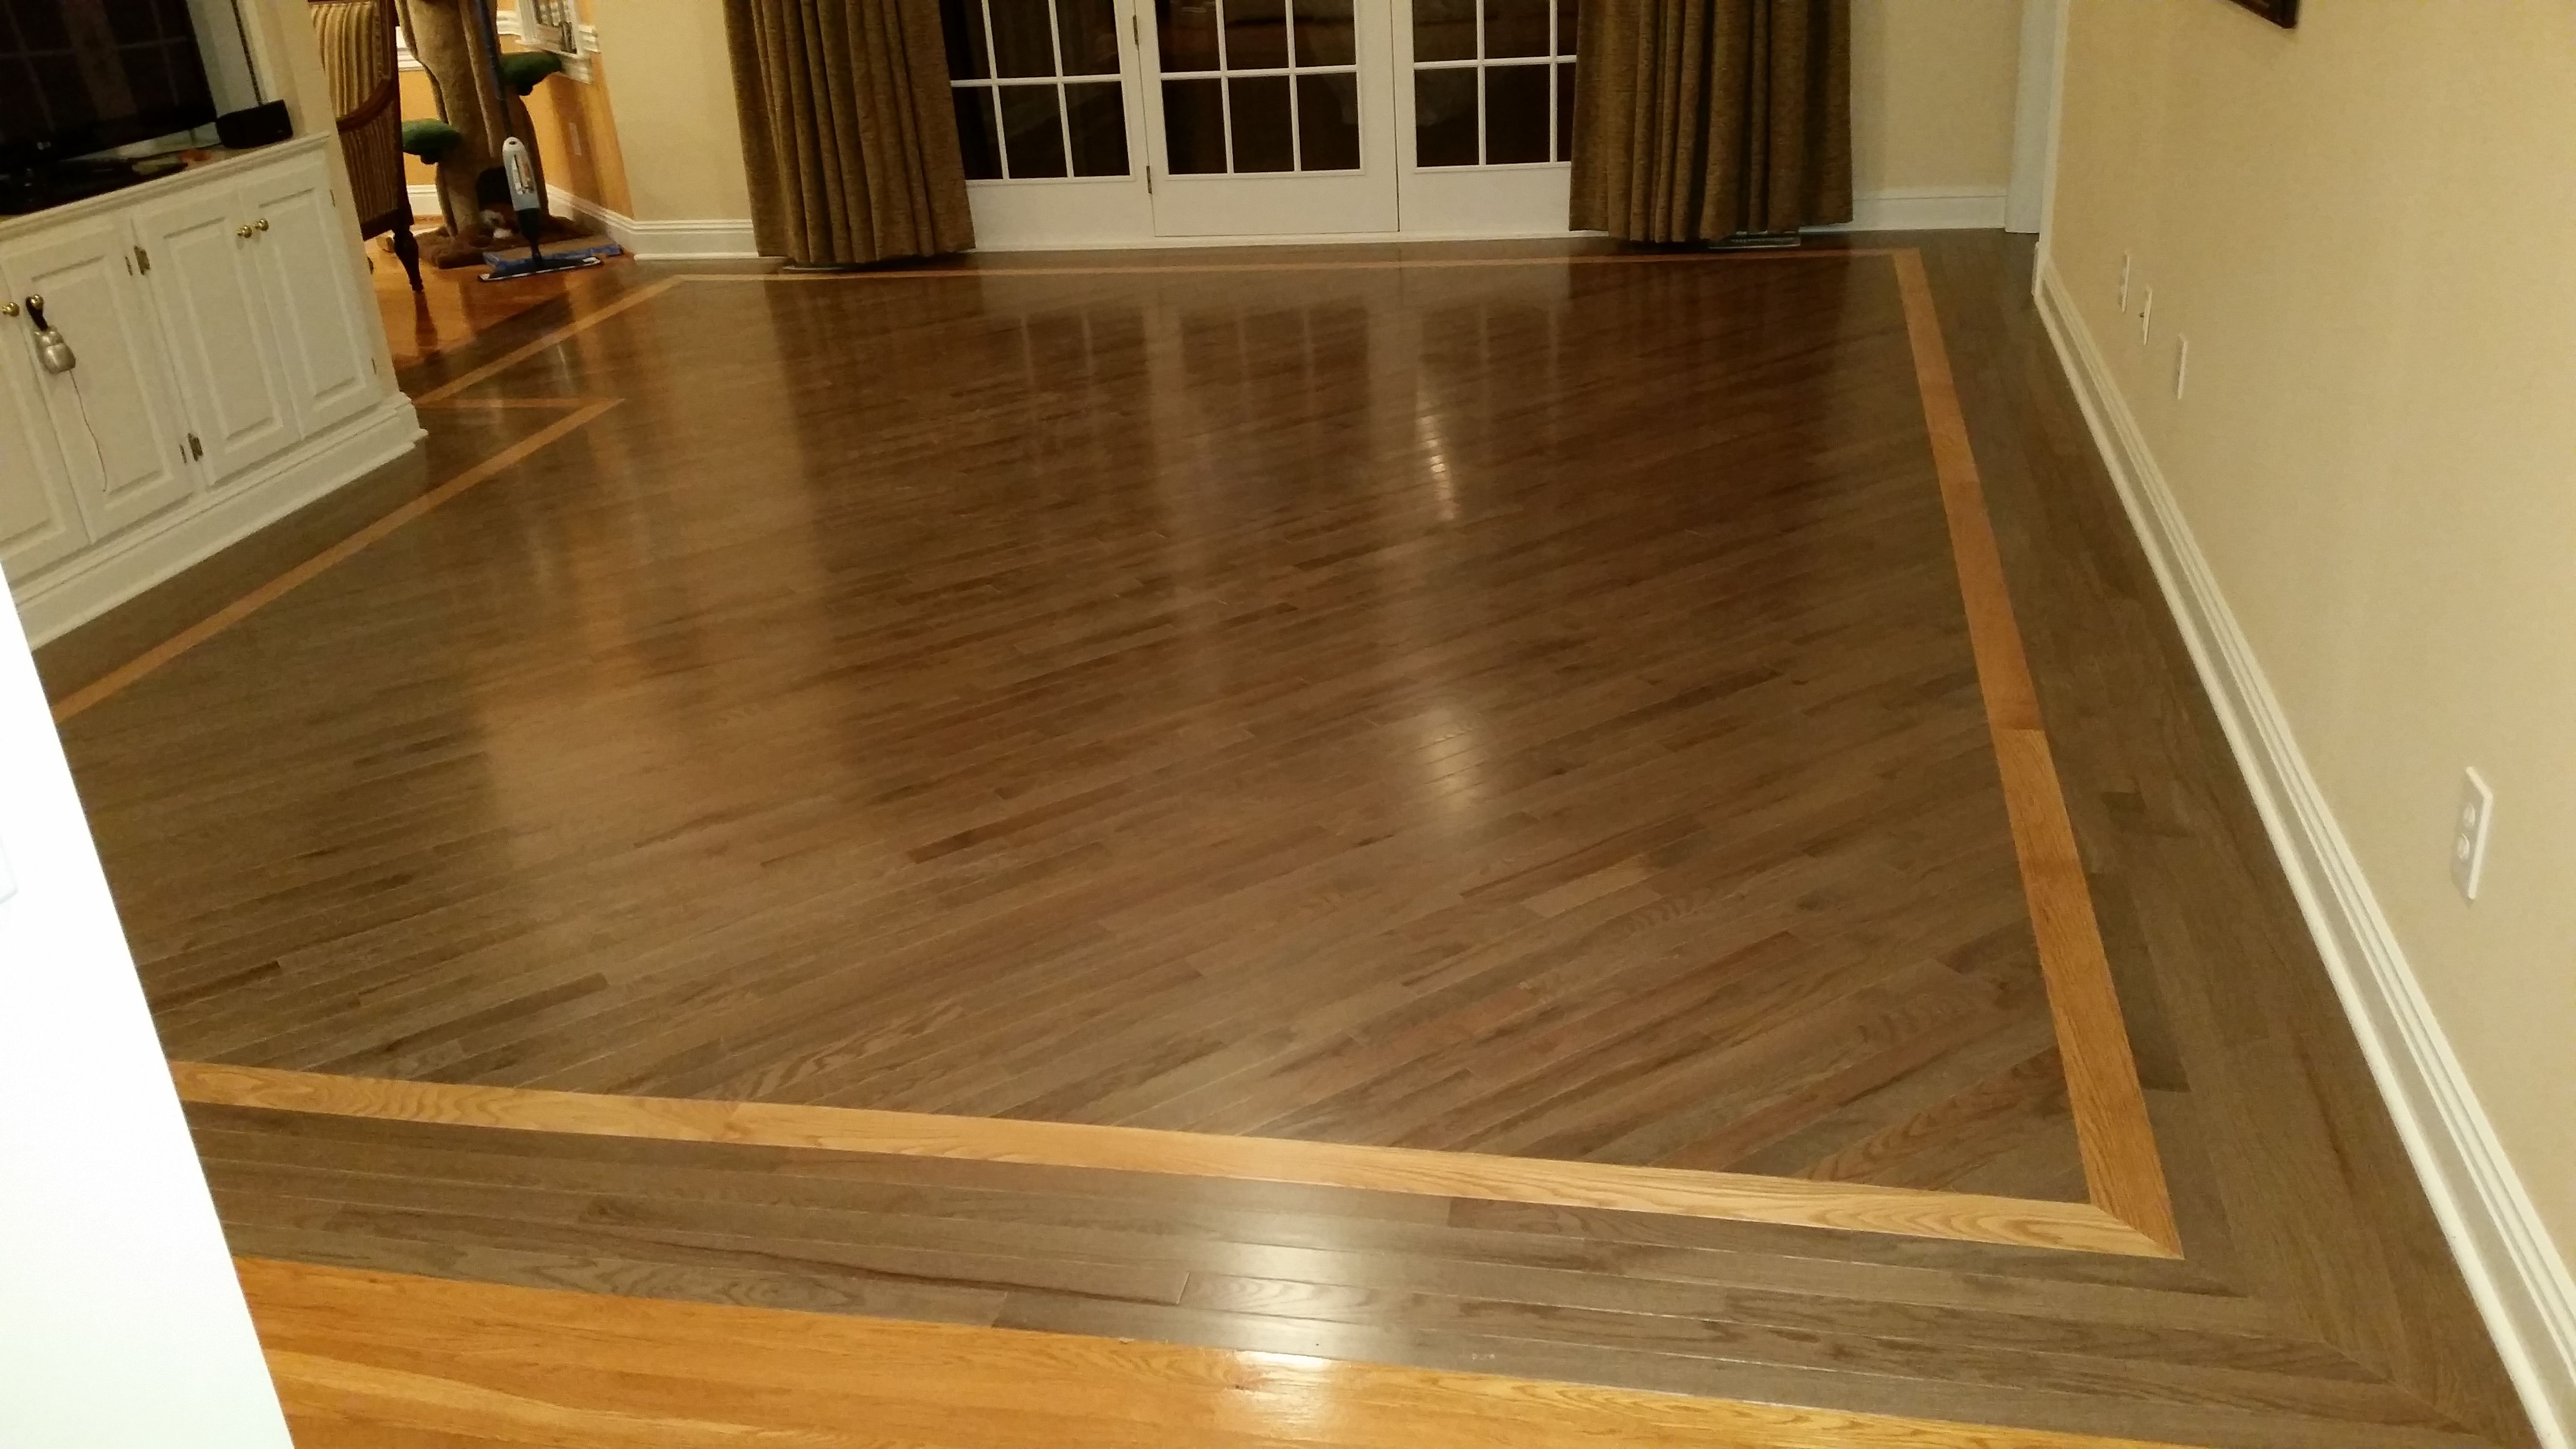 Bluegrass Flooring BluegrassFloors on Pinterest